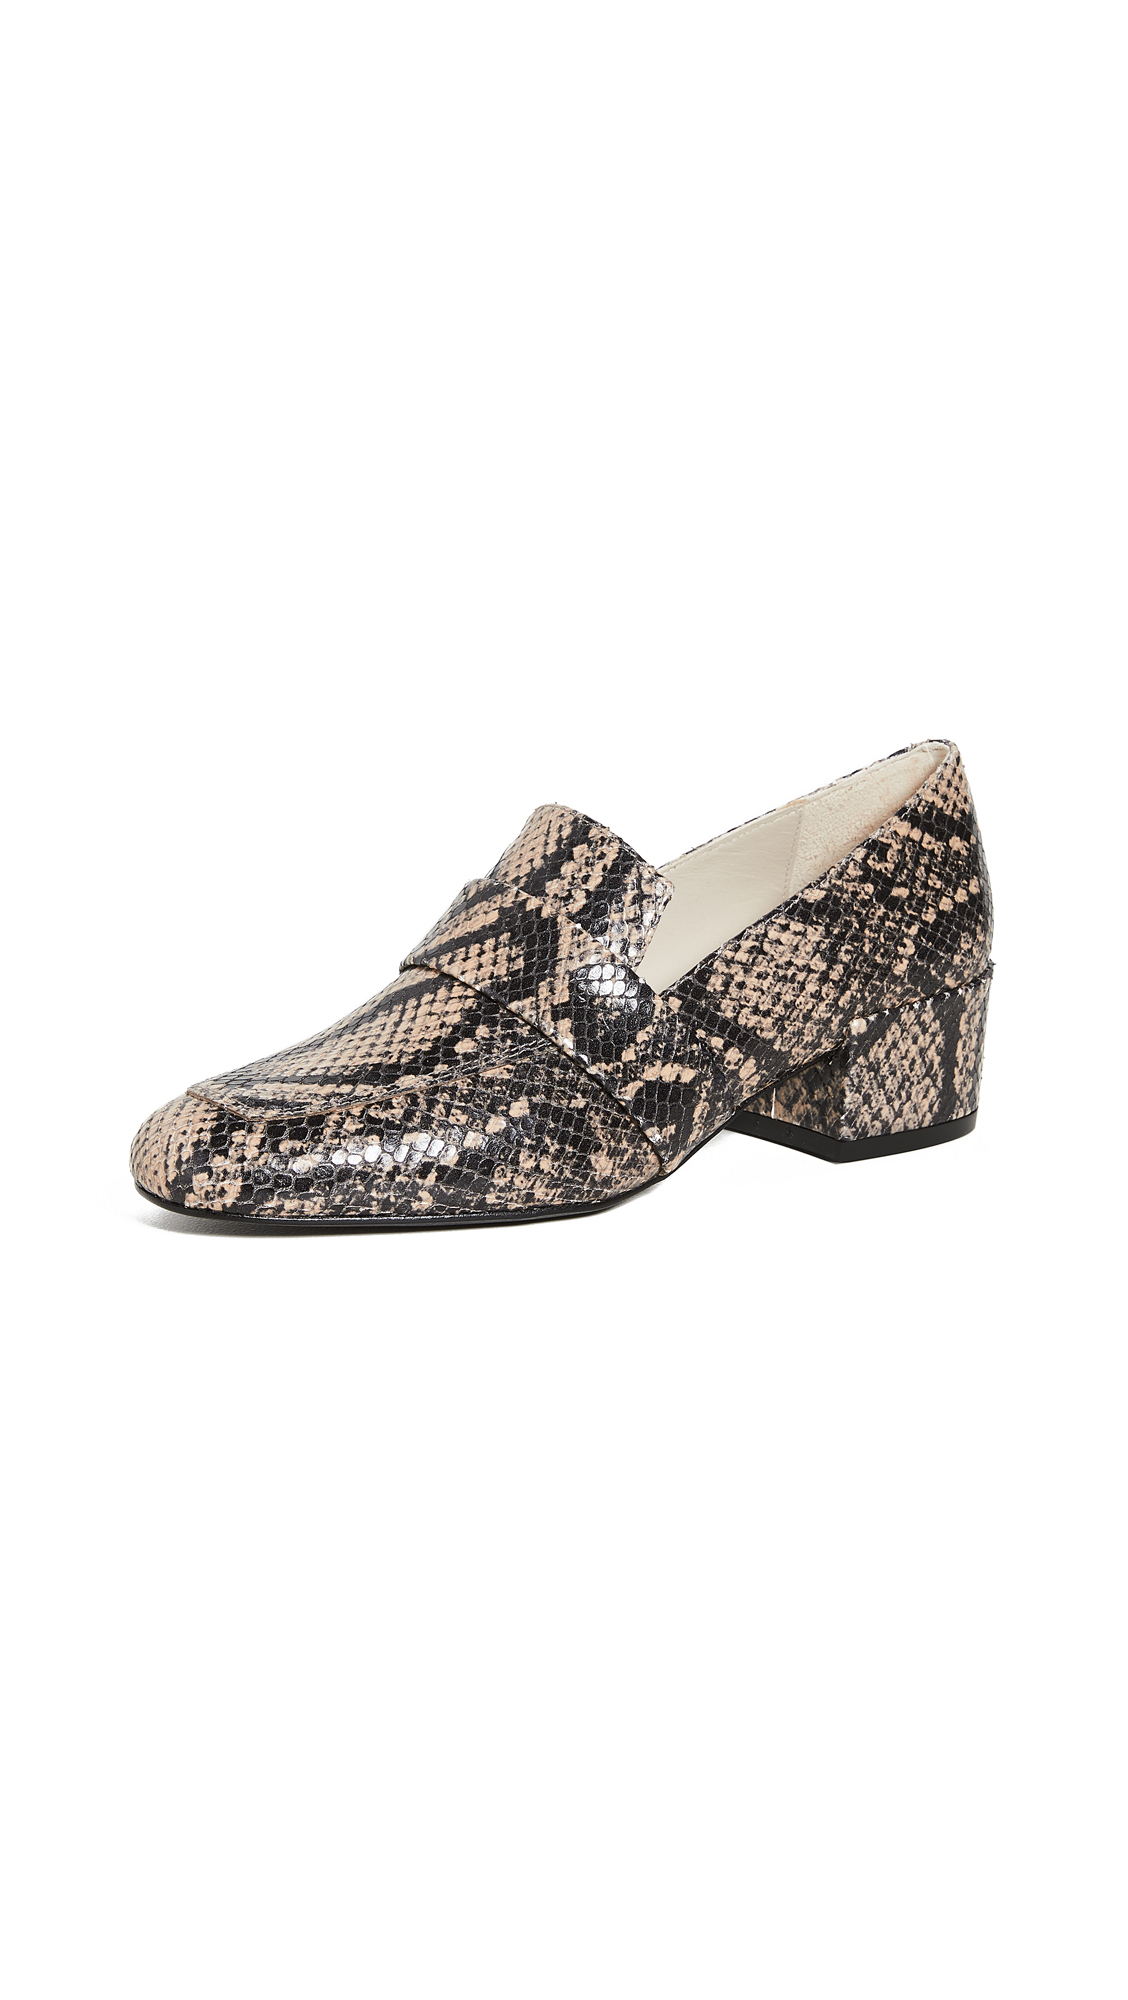 Buy Freda Salvador Rock Heeled Loafers online, shop Freda Salvador